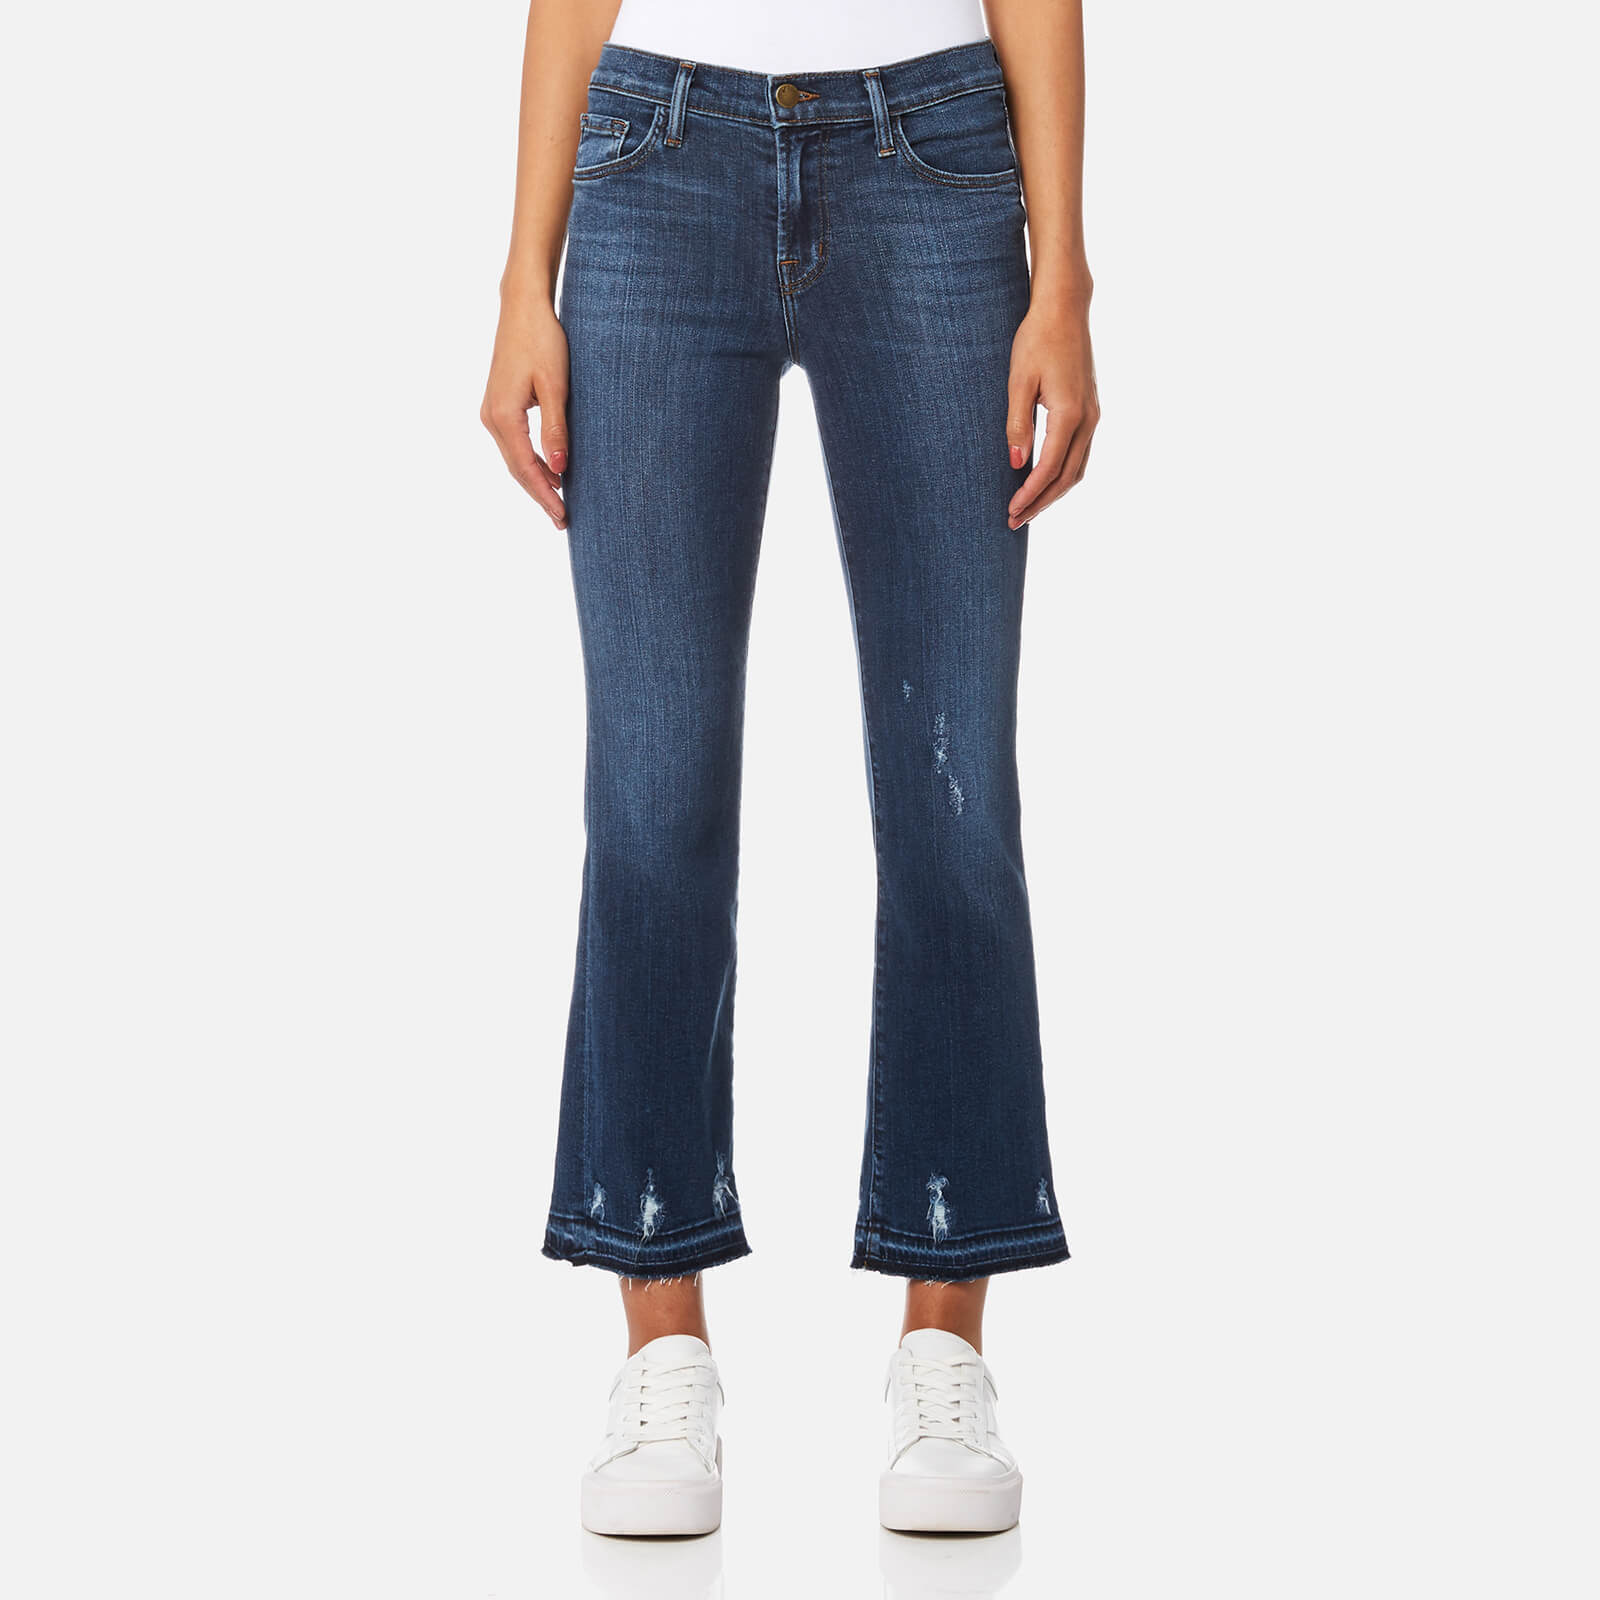 Eastbay For Sale J Brand Woman Cropped Mid-rise Bootcut Jeans Pink Size 29 J Brand Discount Fashion Style L090sVRzCK